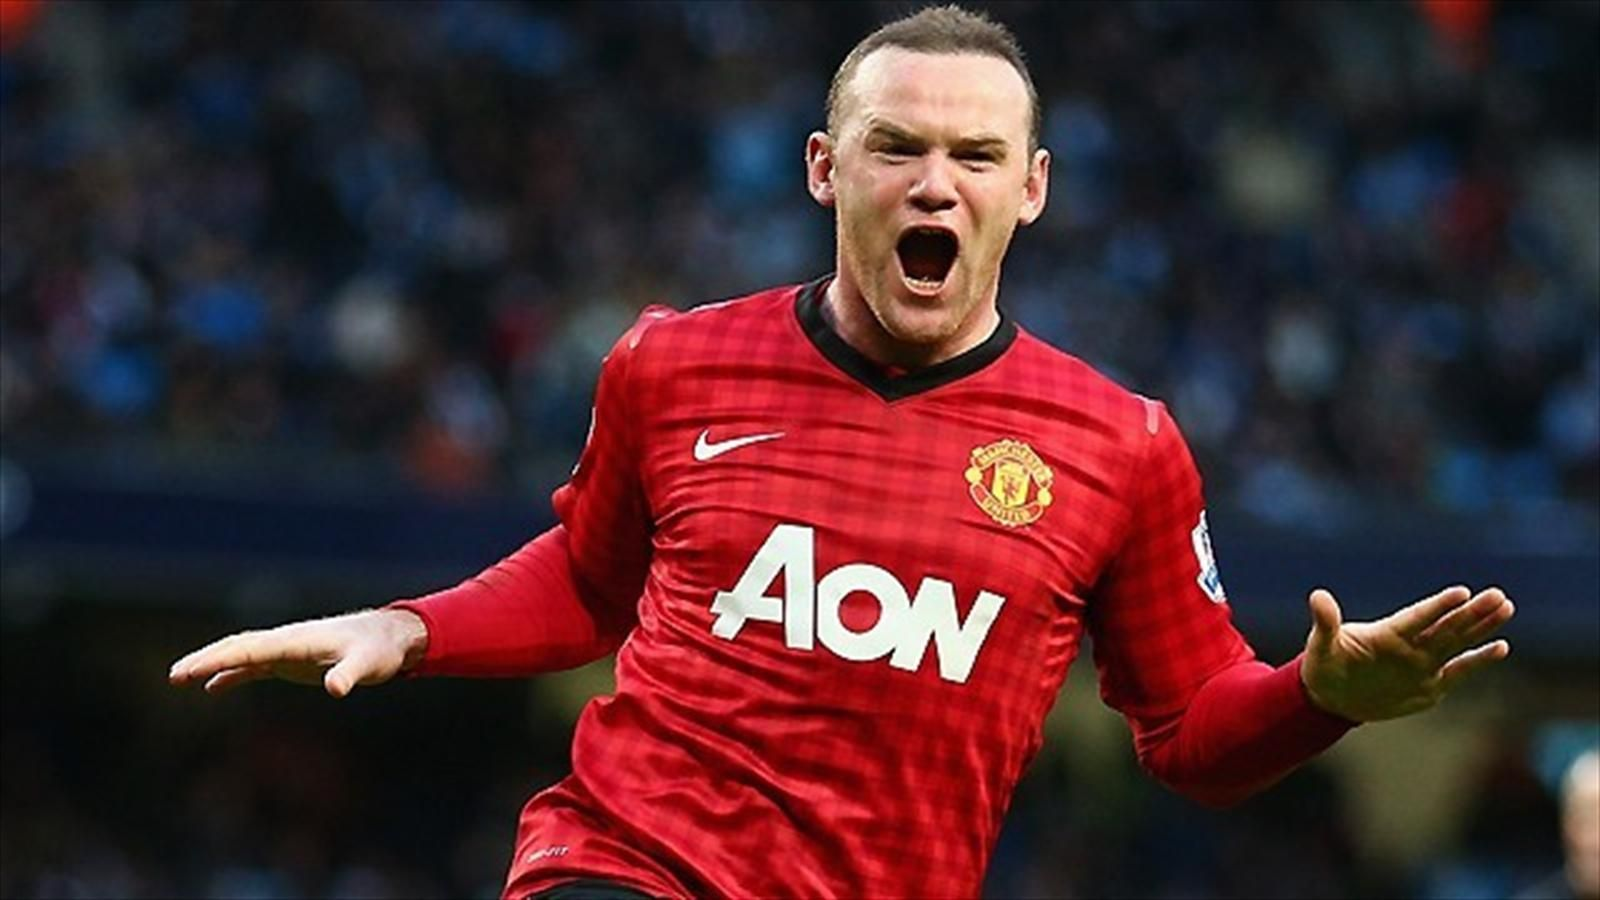 Wilkins tells Rooney to stay at United